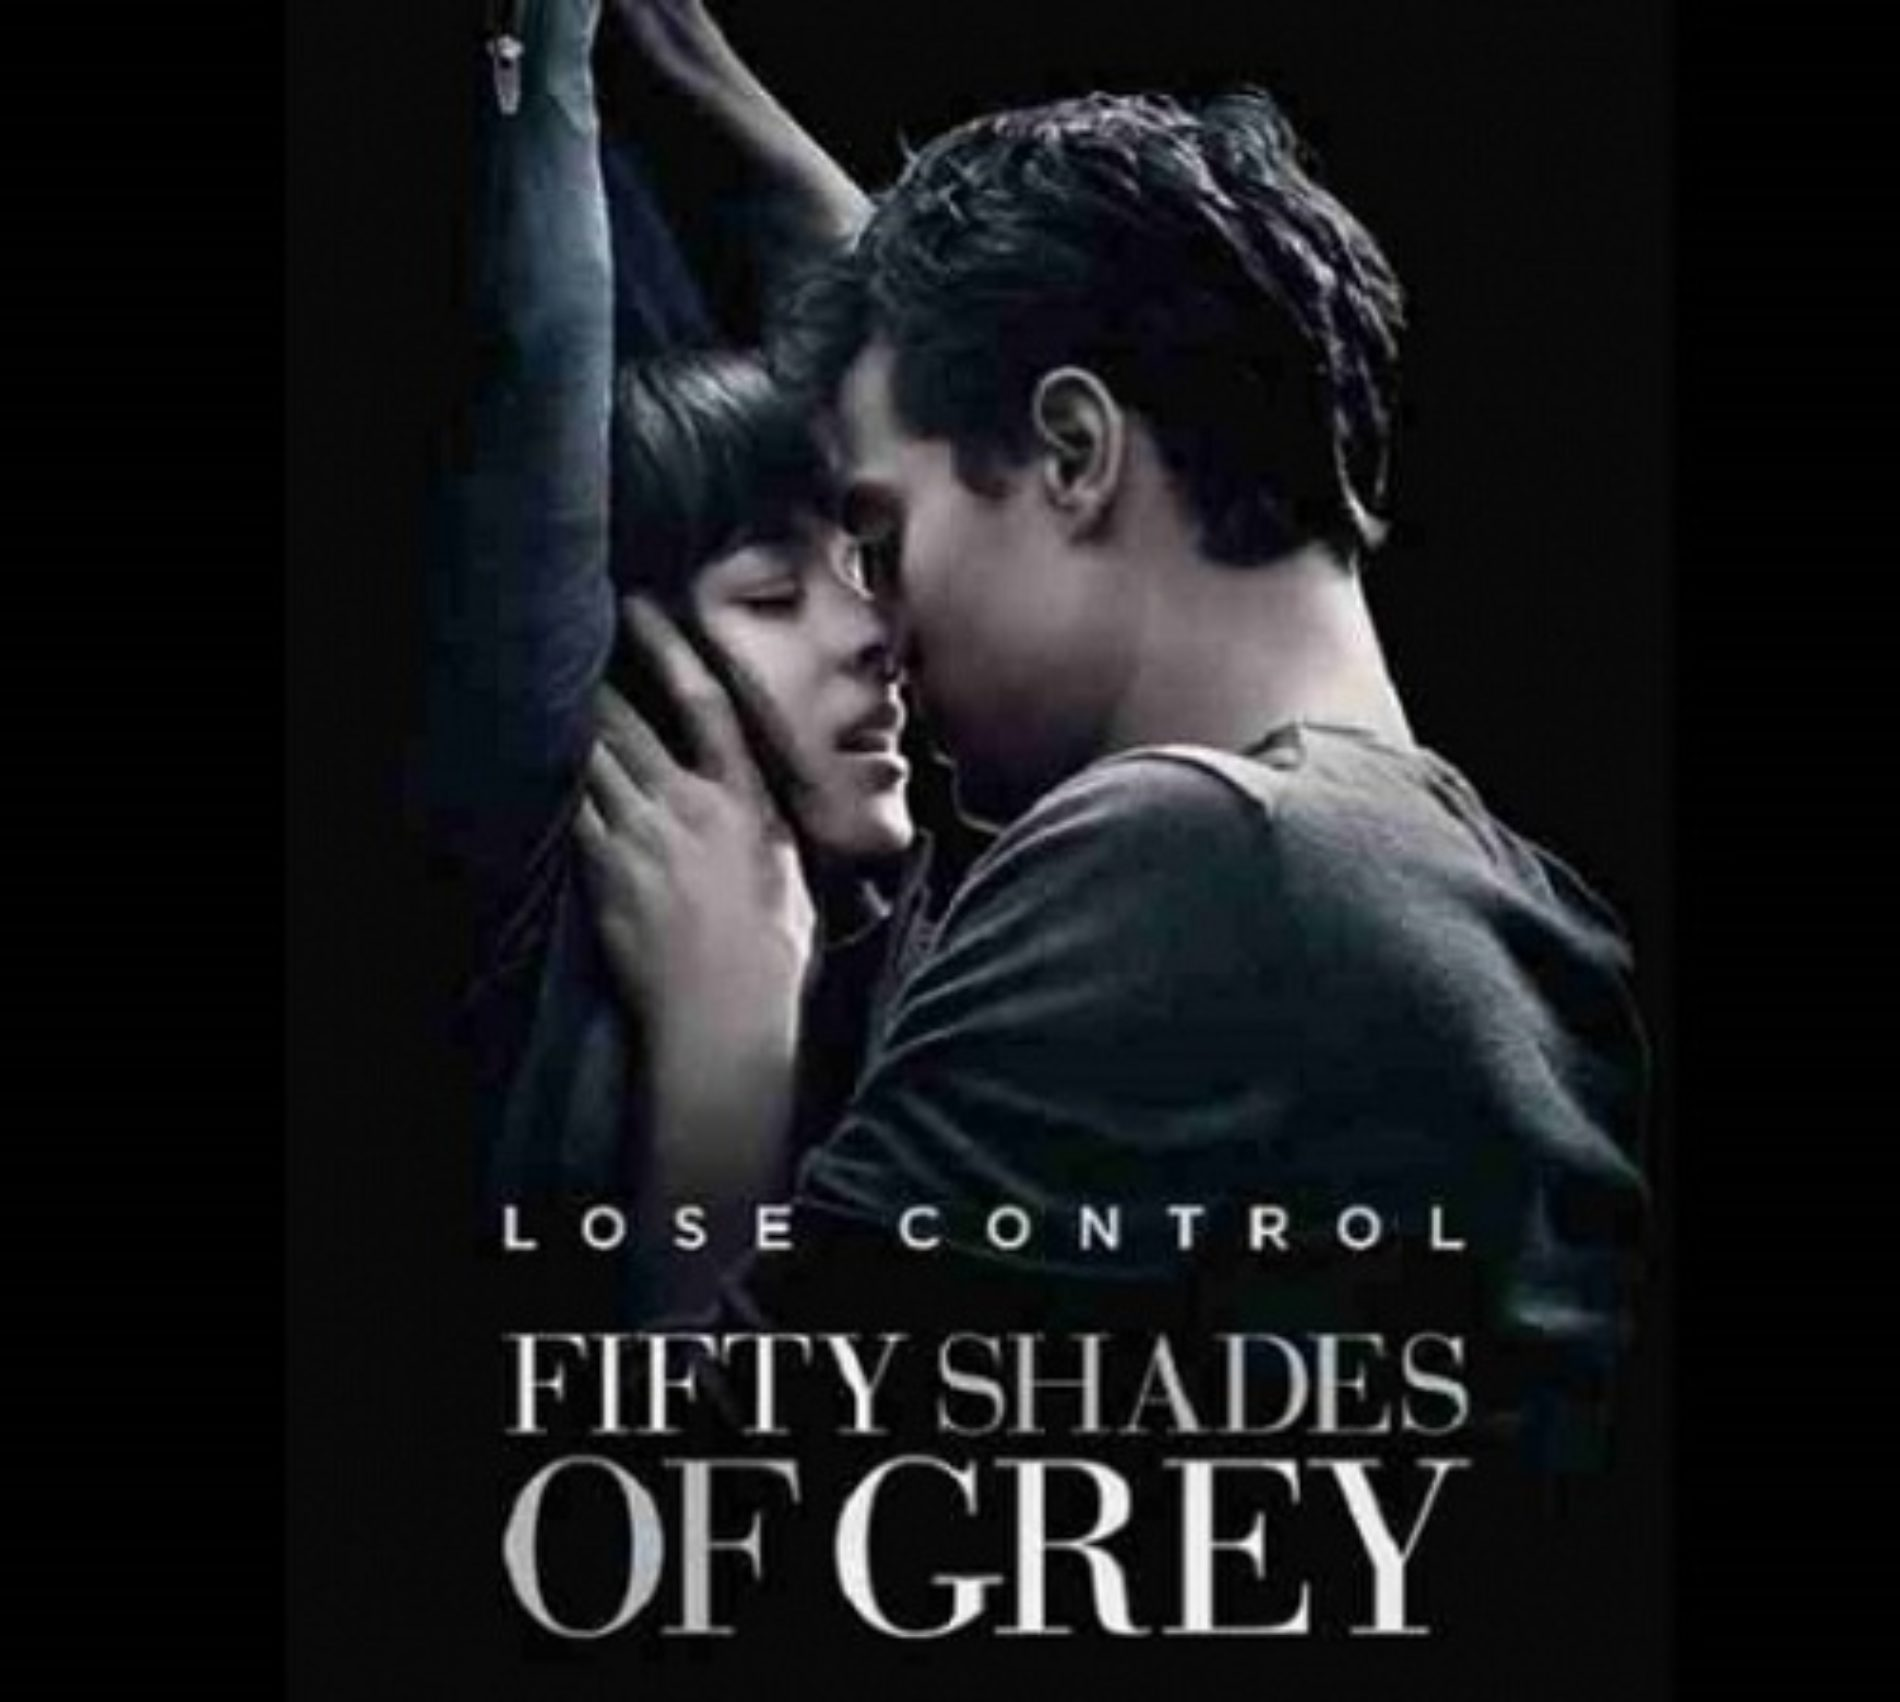 My Take On The Movie 'Fifty Shades Of Grey'